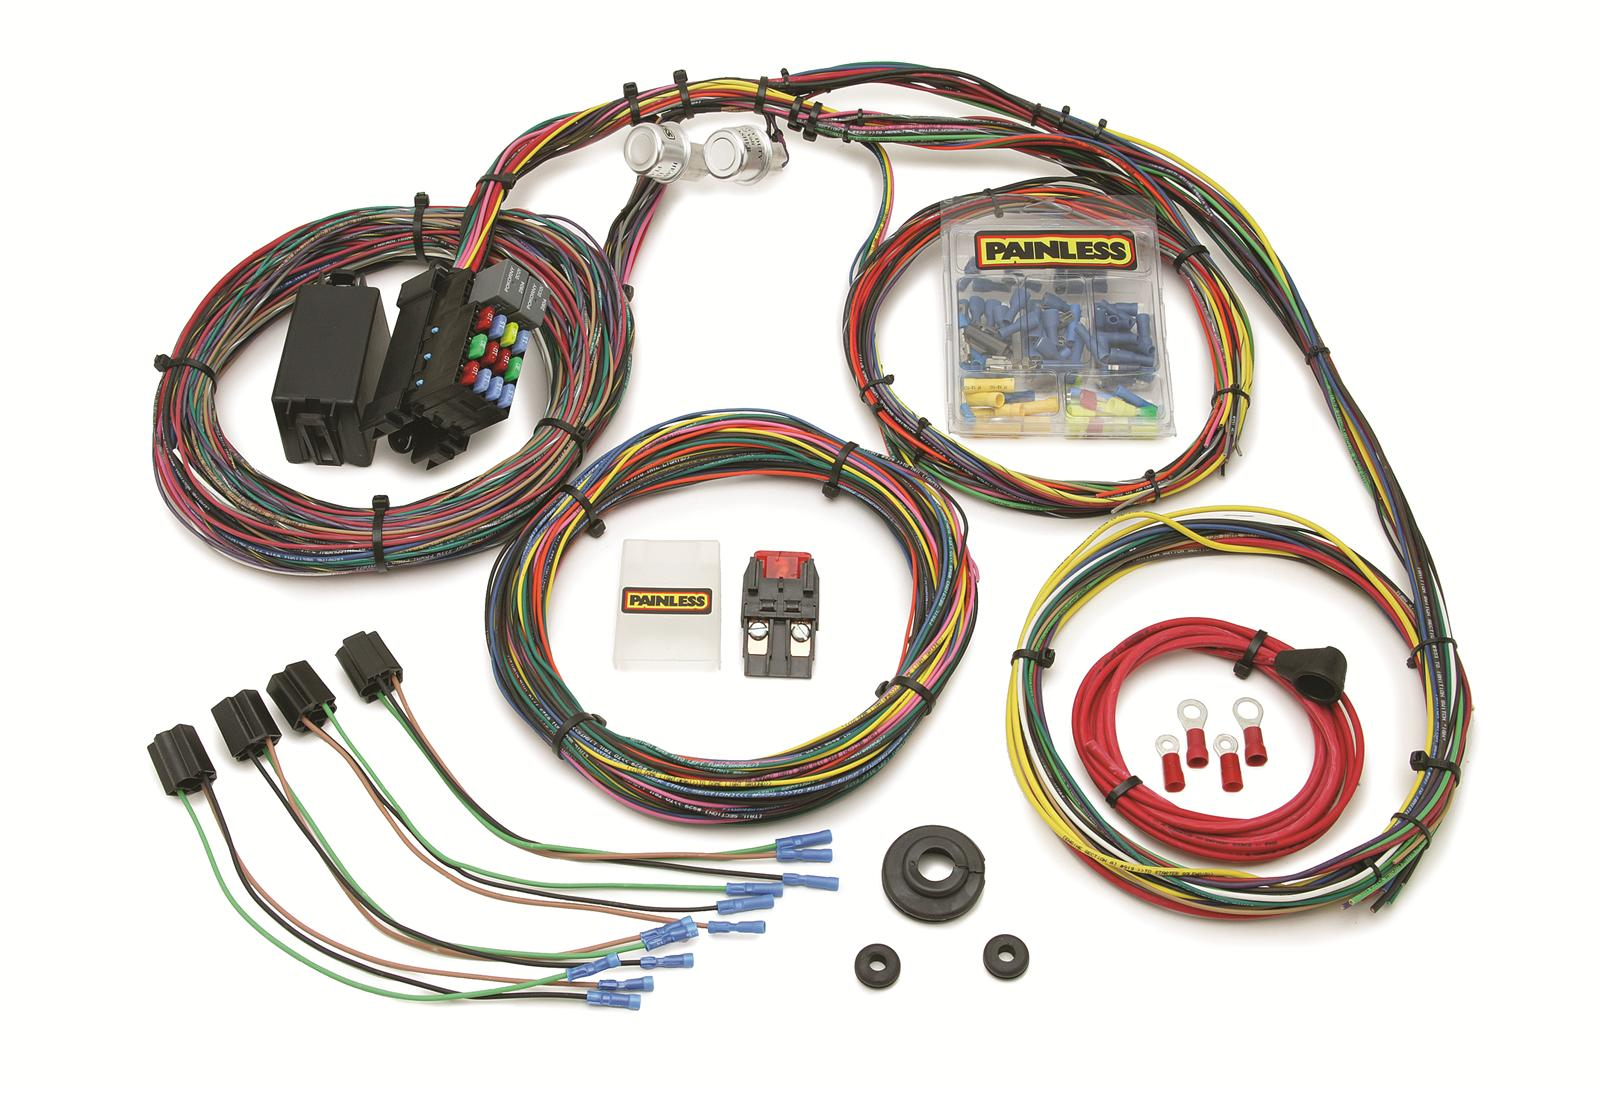 Painless Performance 21-Circuit Mopar Color Coded Universal Wiring on universal car covers, universal tools, universal electronics, universal fuel tanks,